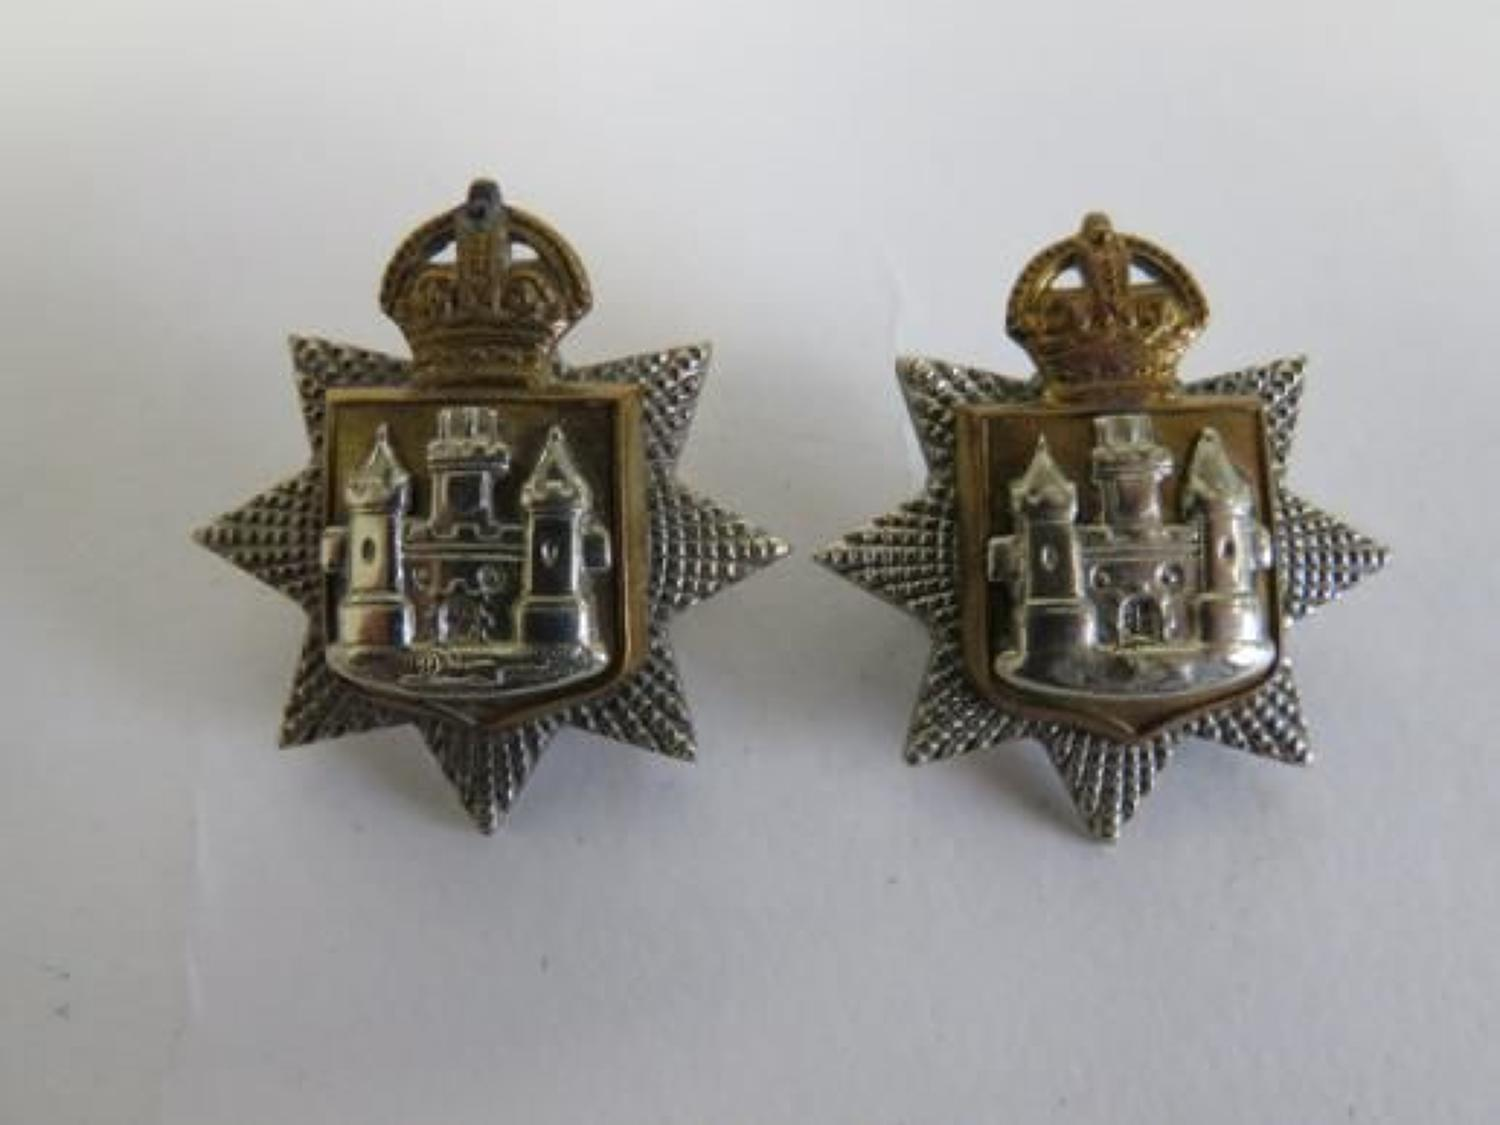 Pair of Post 1901 East Surrey Officer Collar Badges